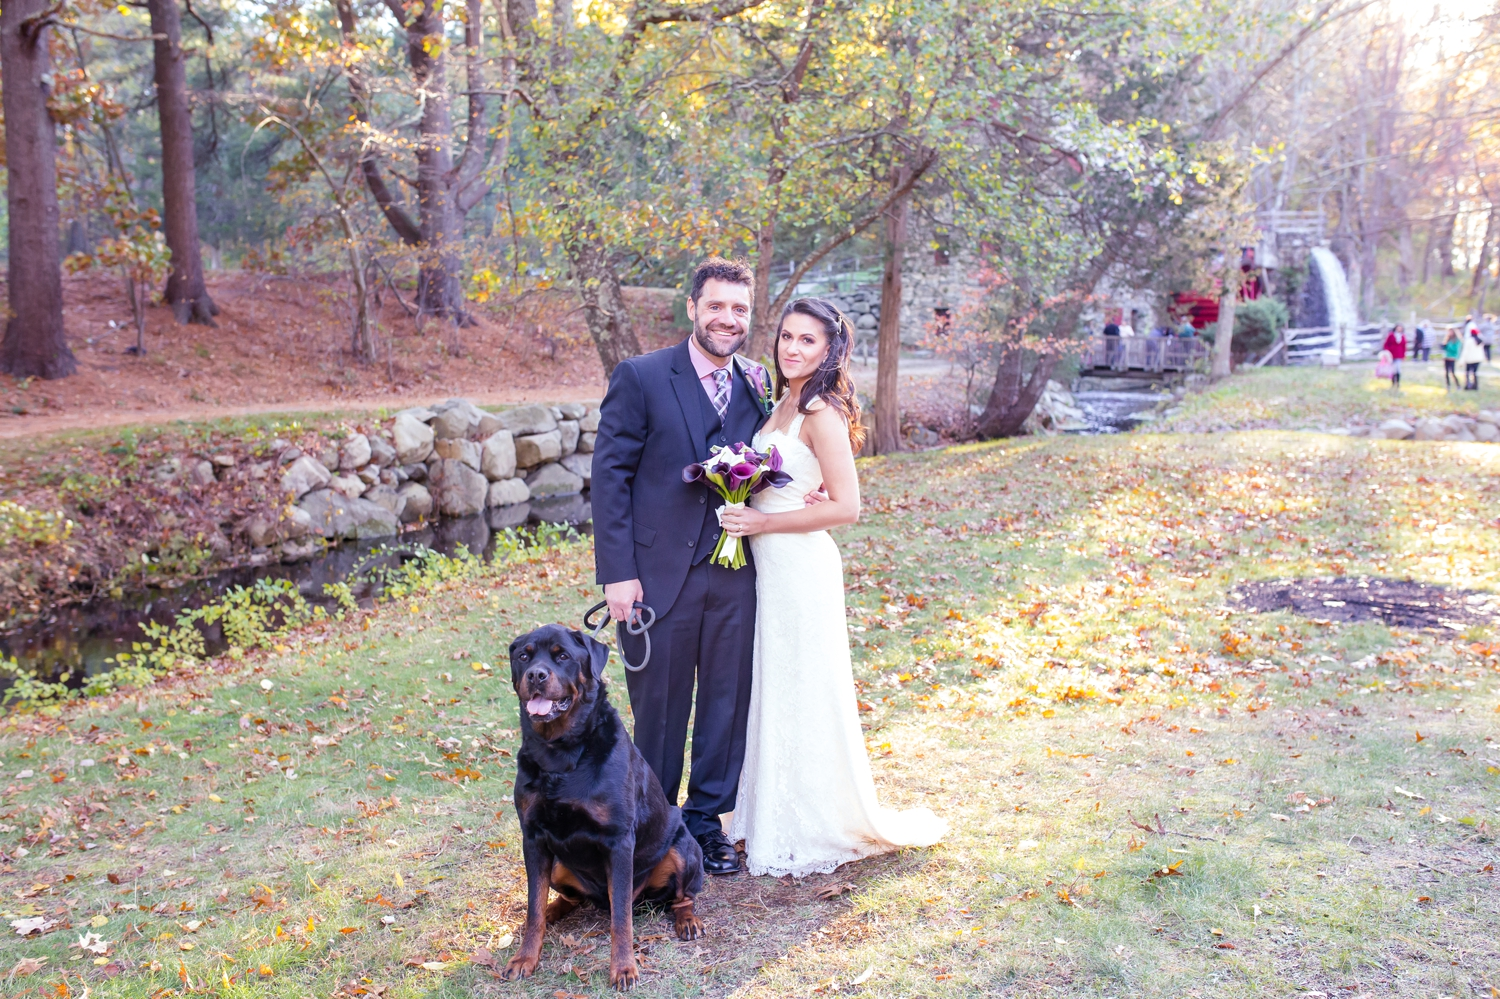 I loved that they brought their awesome dog Dino to their Ceremony and posed with them!!! Such a lucky dog!!